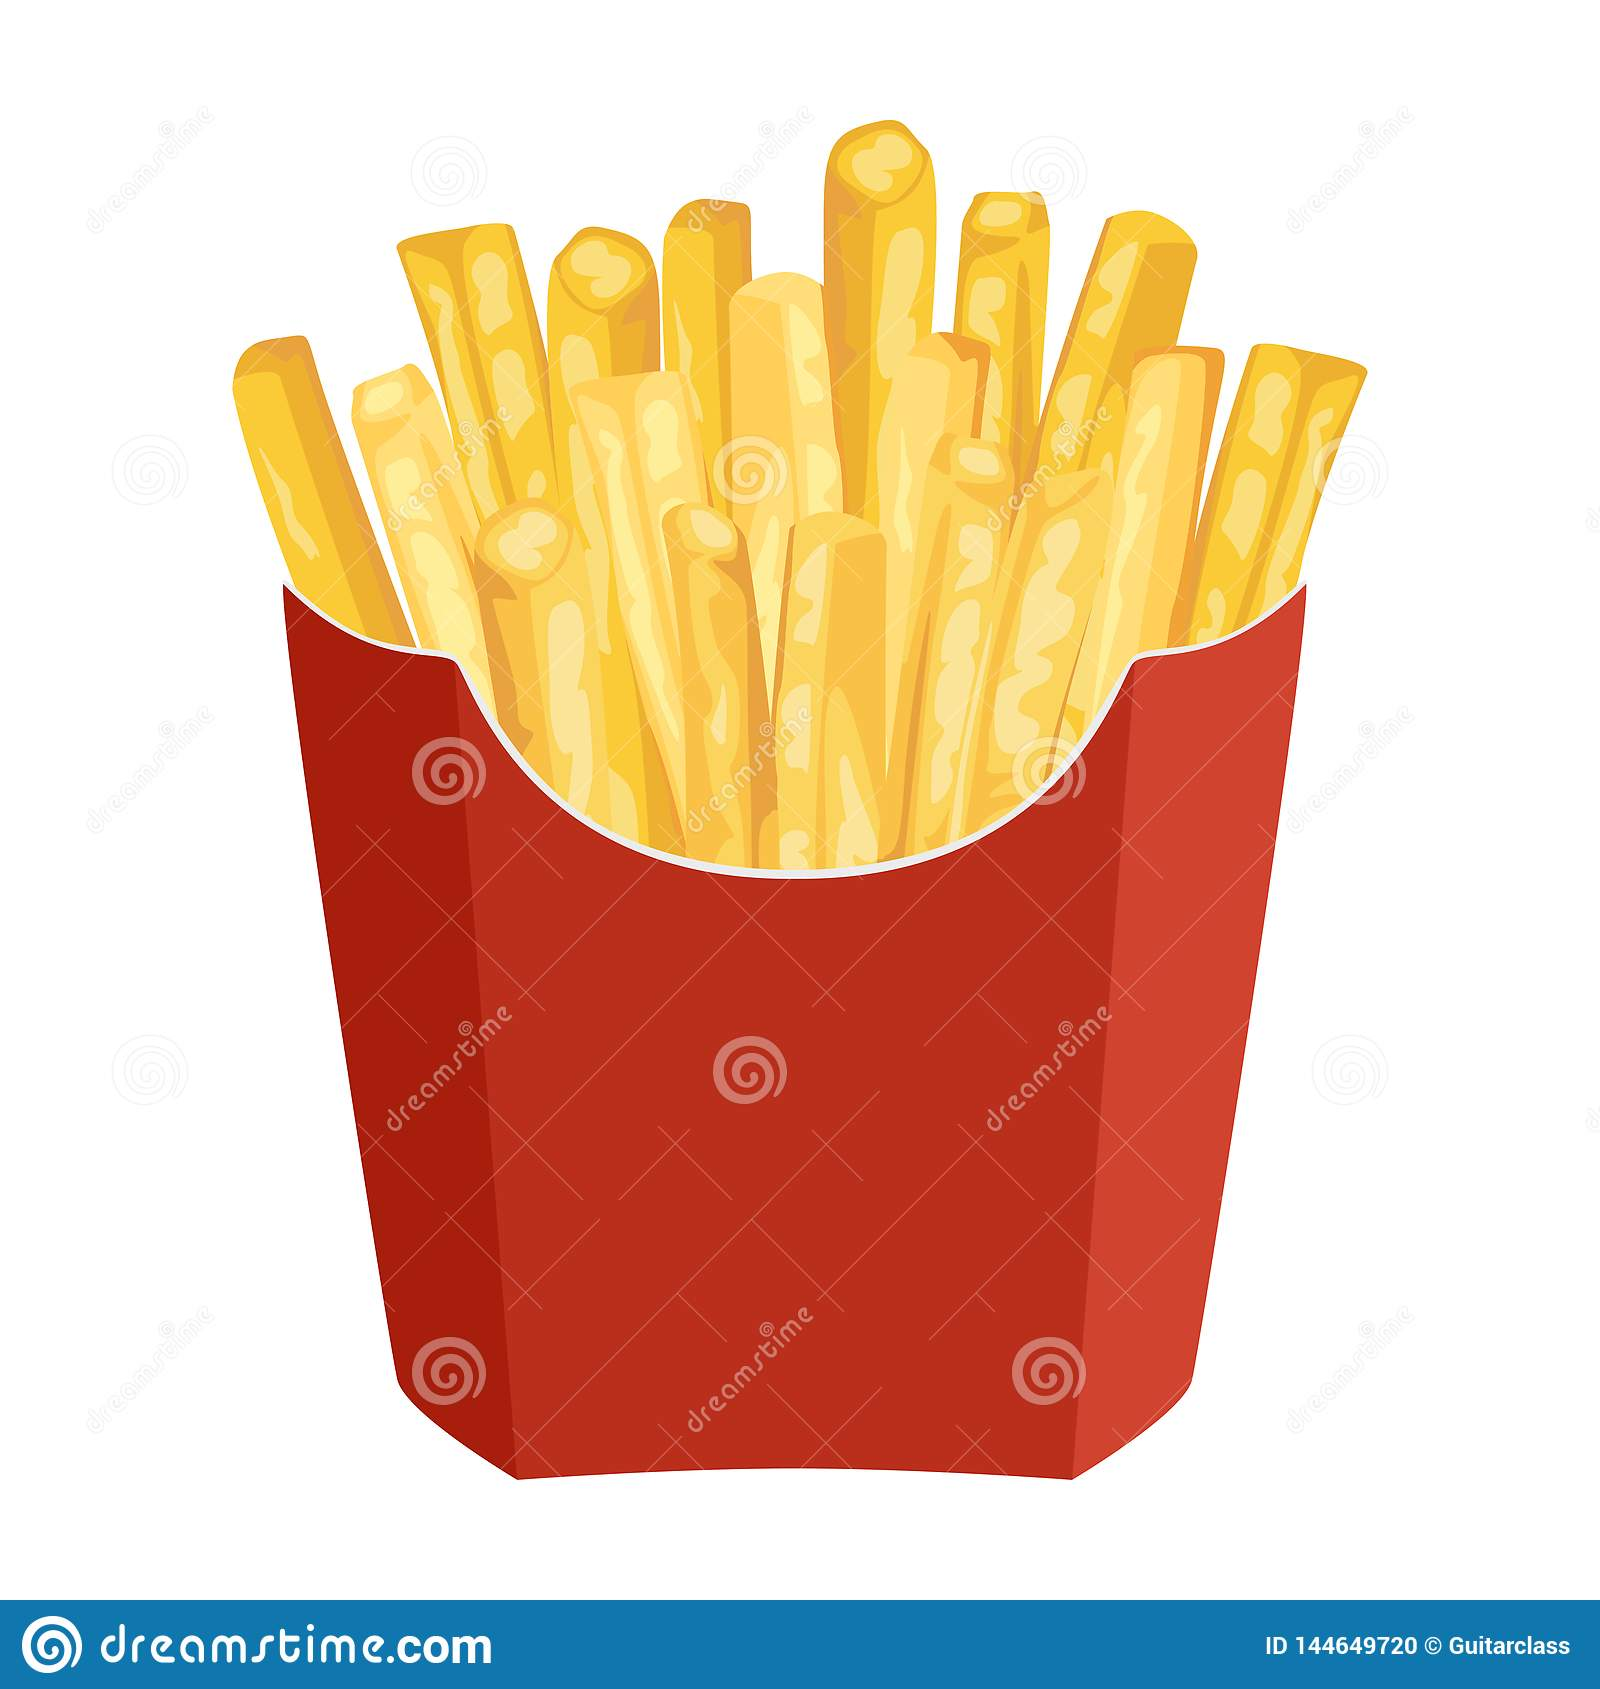 French Fries in red Paper Packaging Bags isolated on white background.